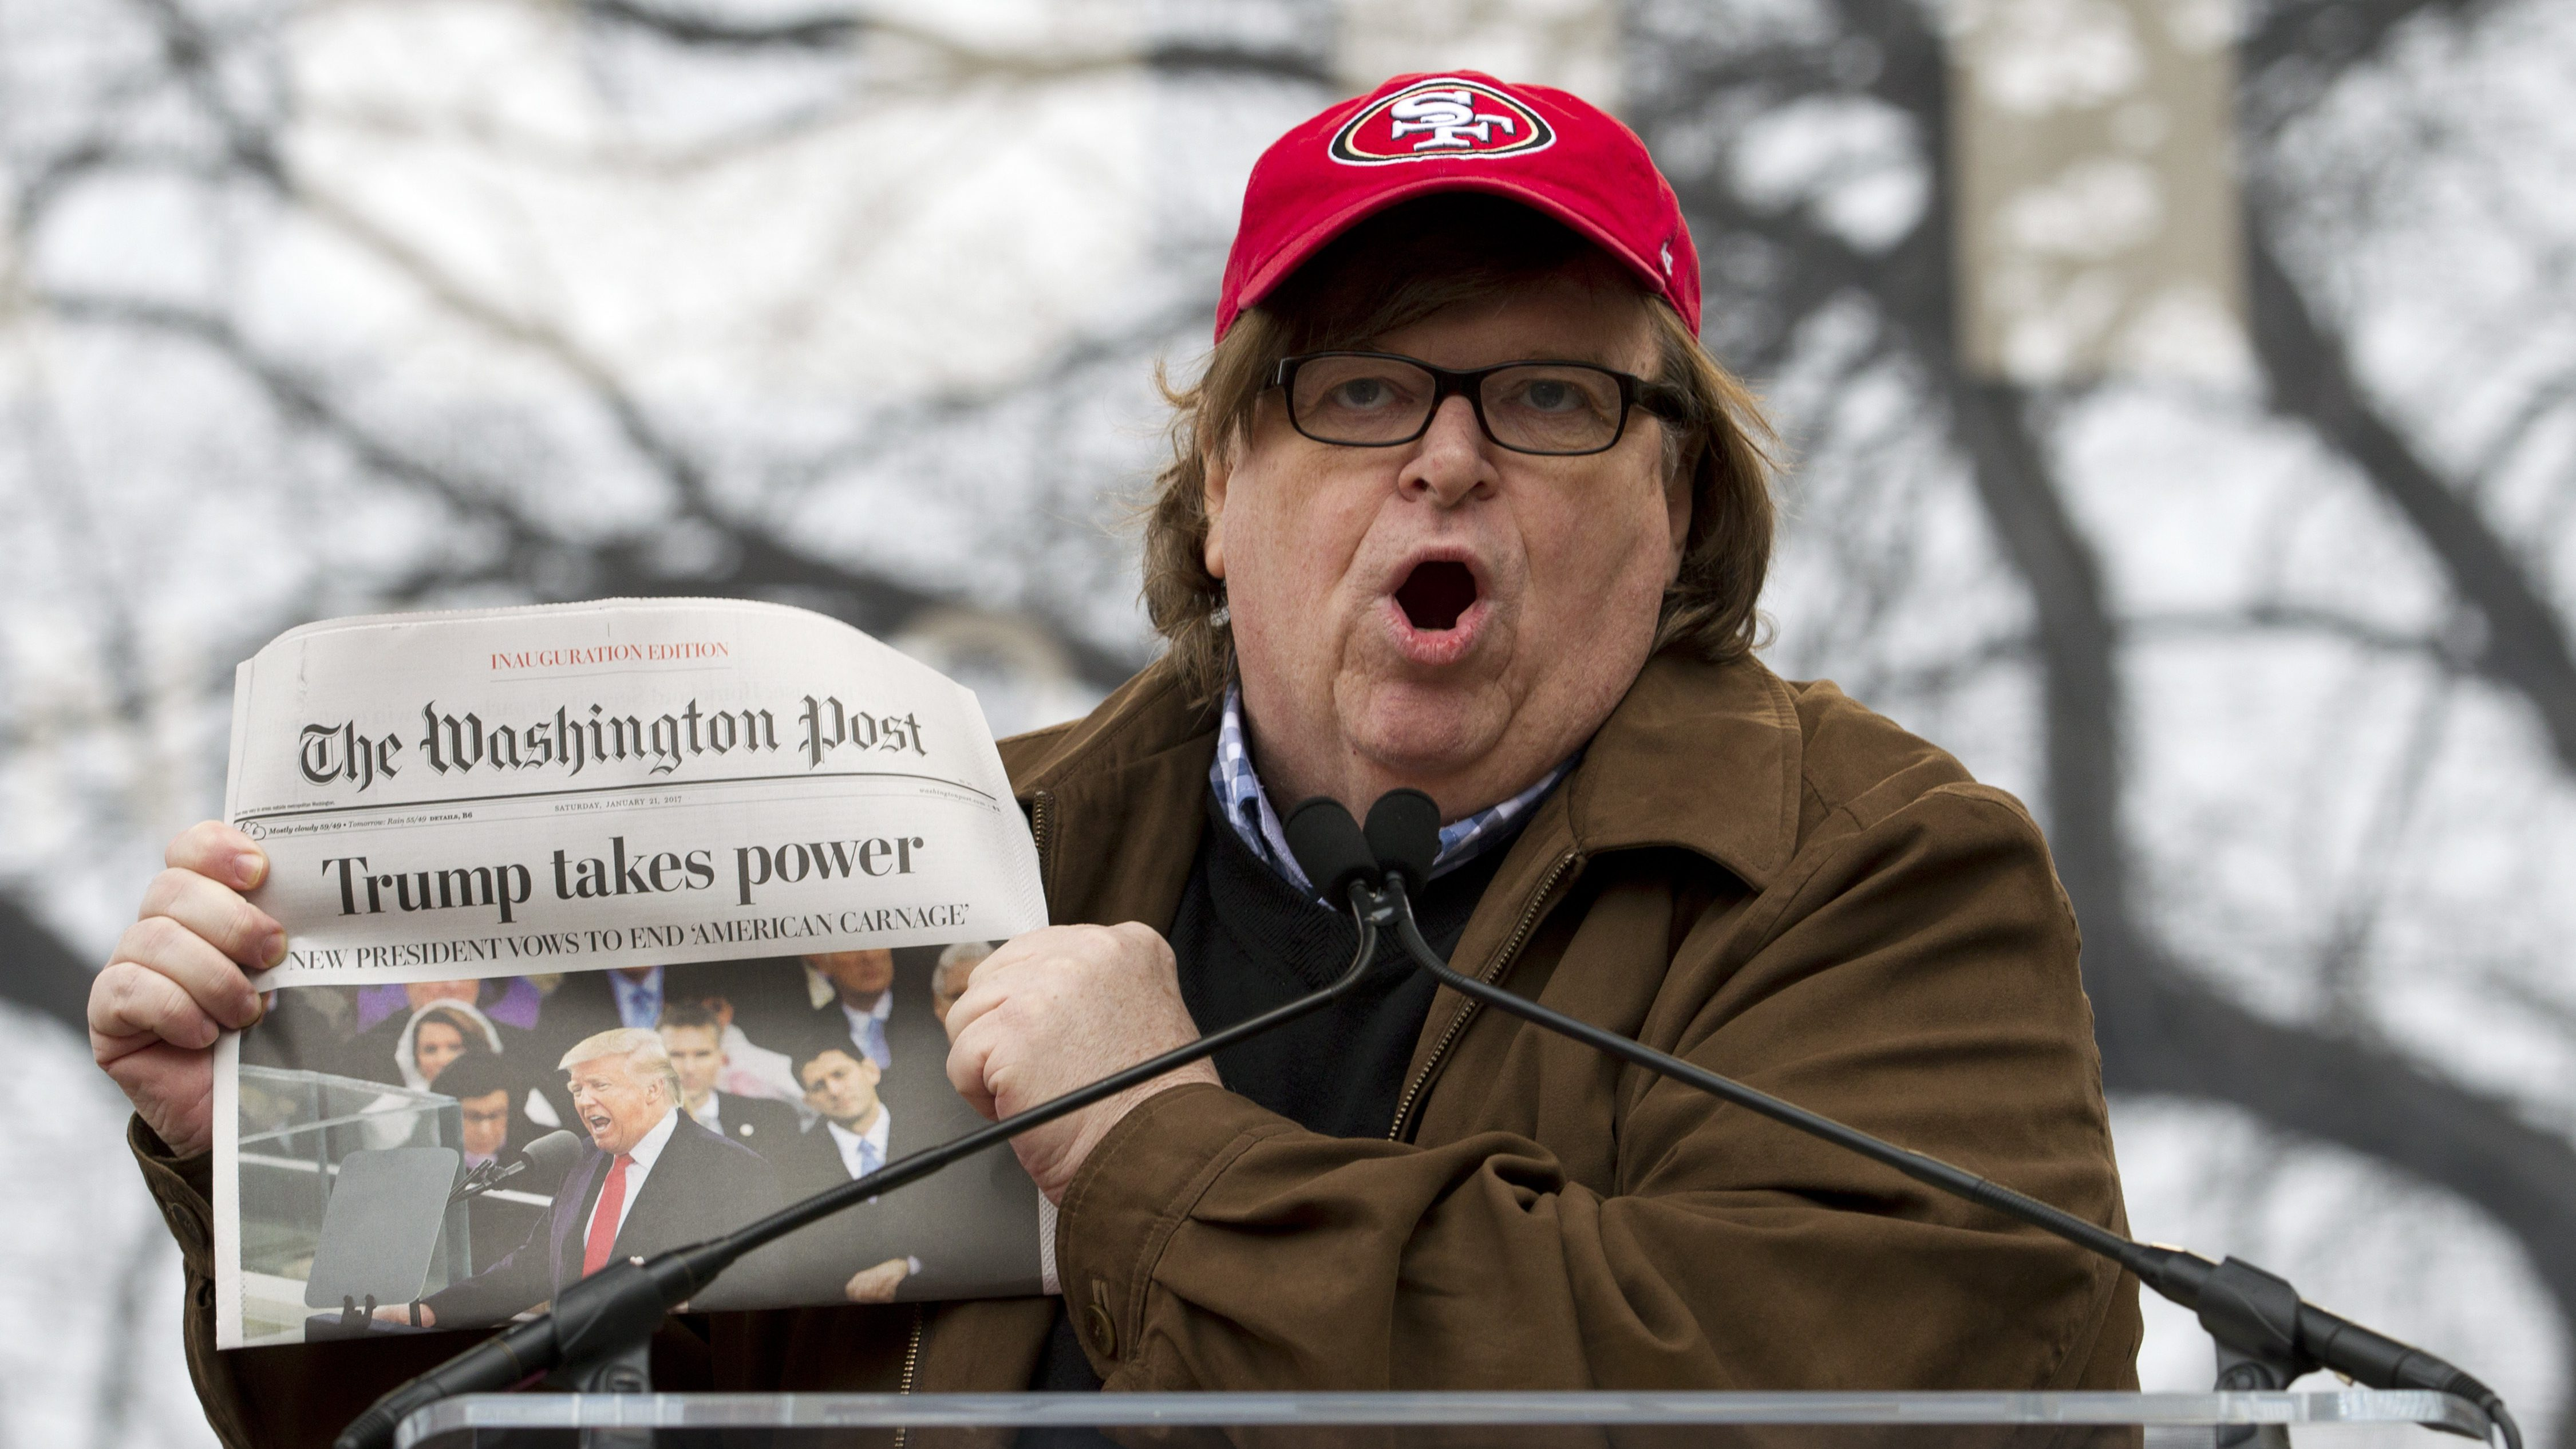 Film director Michael Moore speaks to the crowd during the Women's March rally, Saturday, Jan. 21, 2017 in Washington. In a global exclamation of defiance and solidarity, more than 1 million people rallied at women's marches in the nation's capital and cities around the world Saturday to send President Donald Trump an emphatic message on his first full day in office that they won't let his agenda go unchallenged. ( AP Photo/Jose Luis Magana)